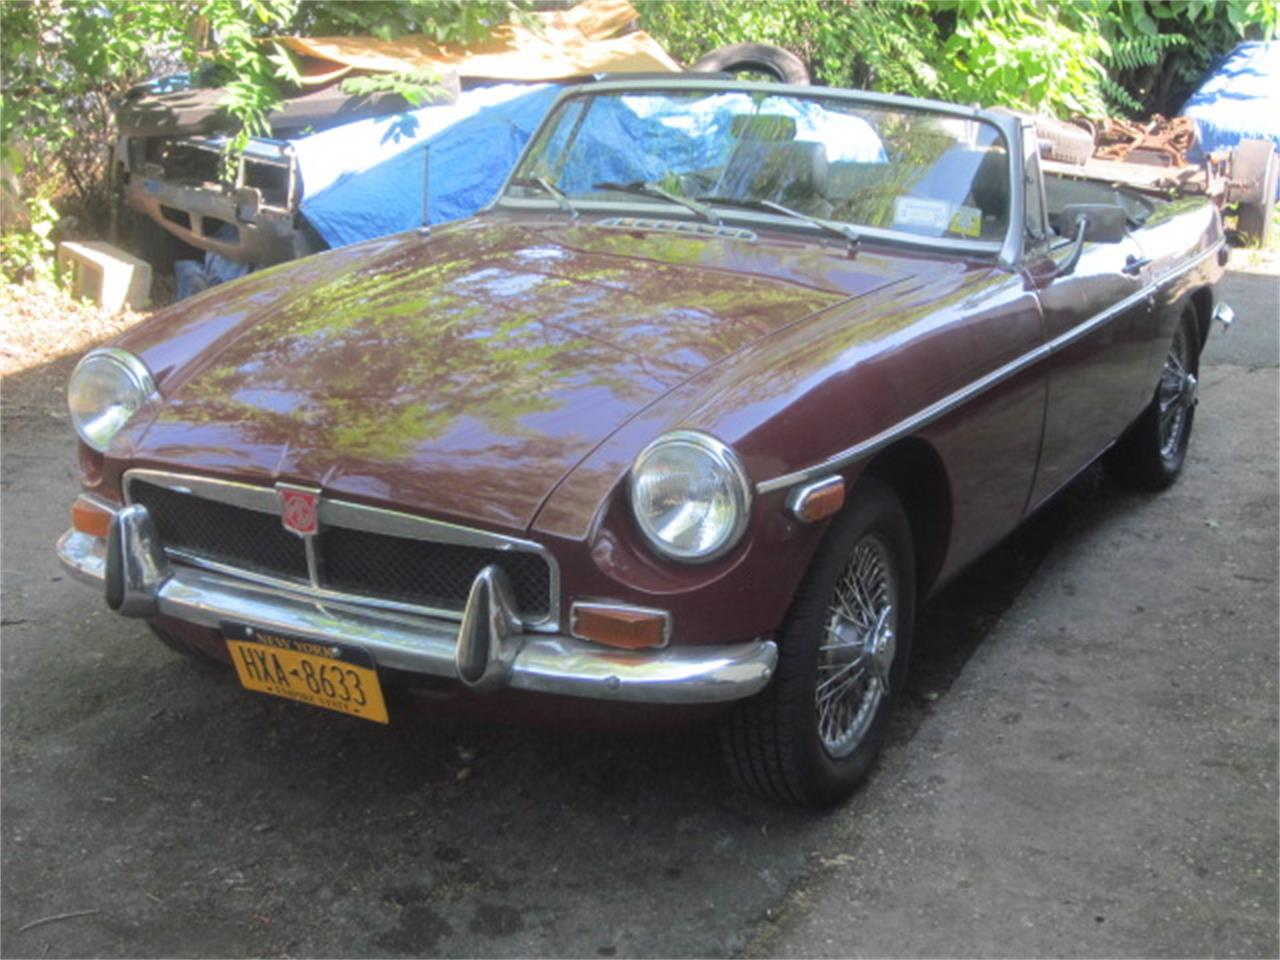 Large Picture of '73 MG MGB located in Connecticut - $17,500.00 - QGKS